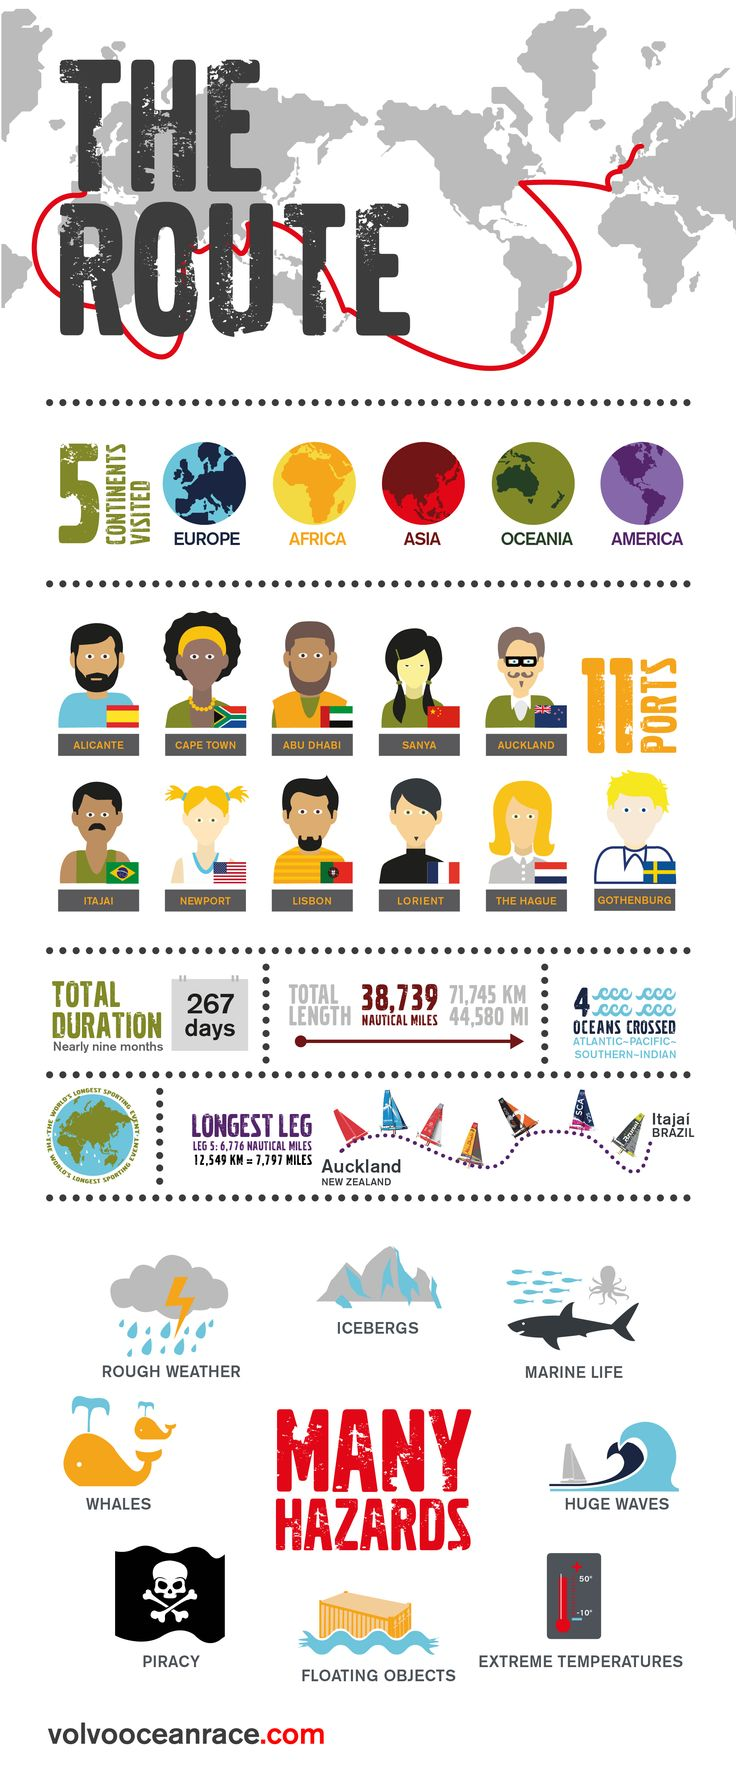 Fun & interesting facts about the route around the world!